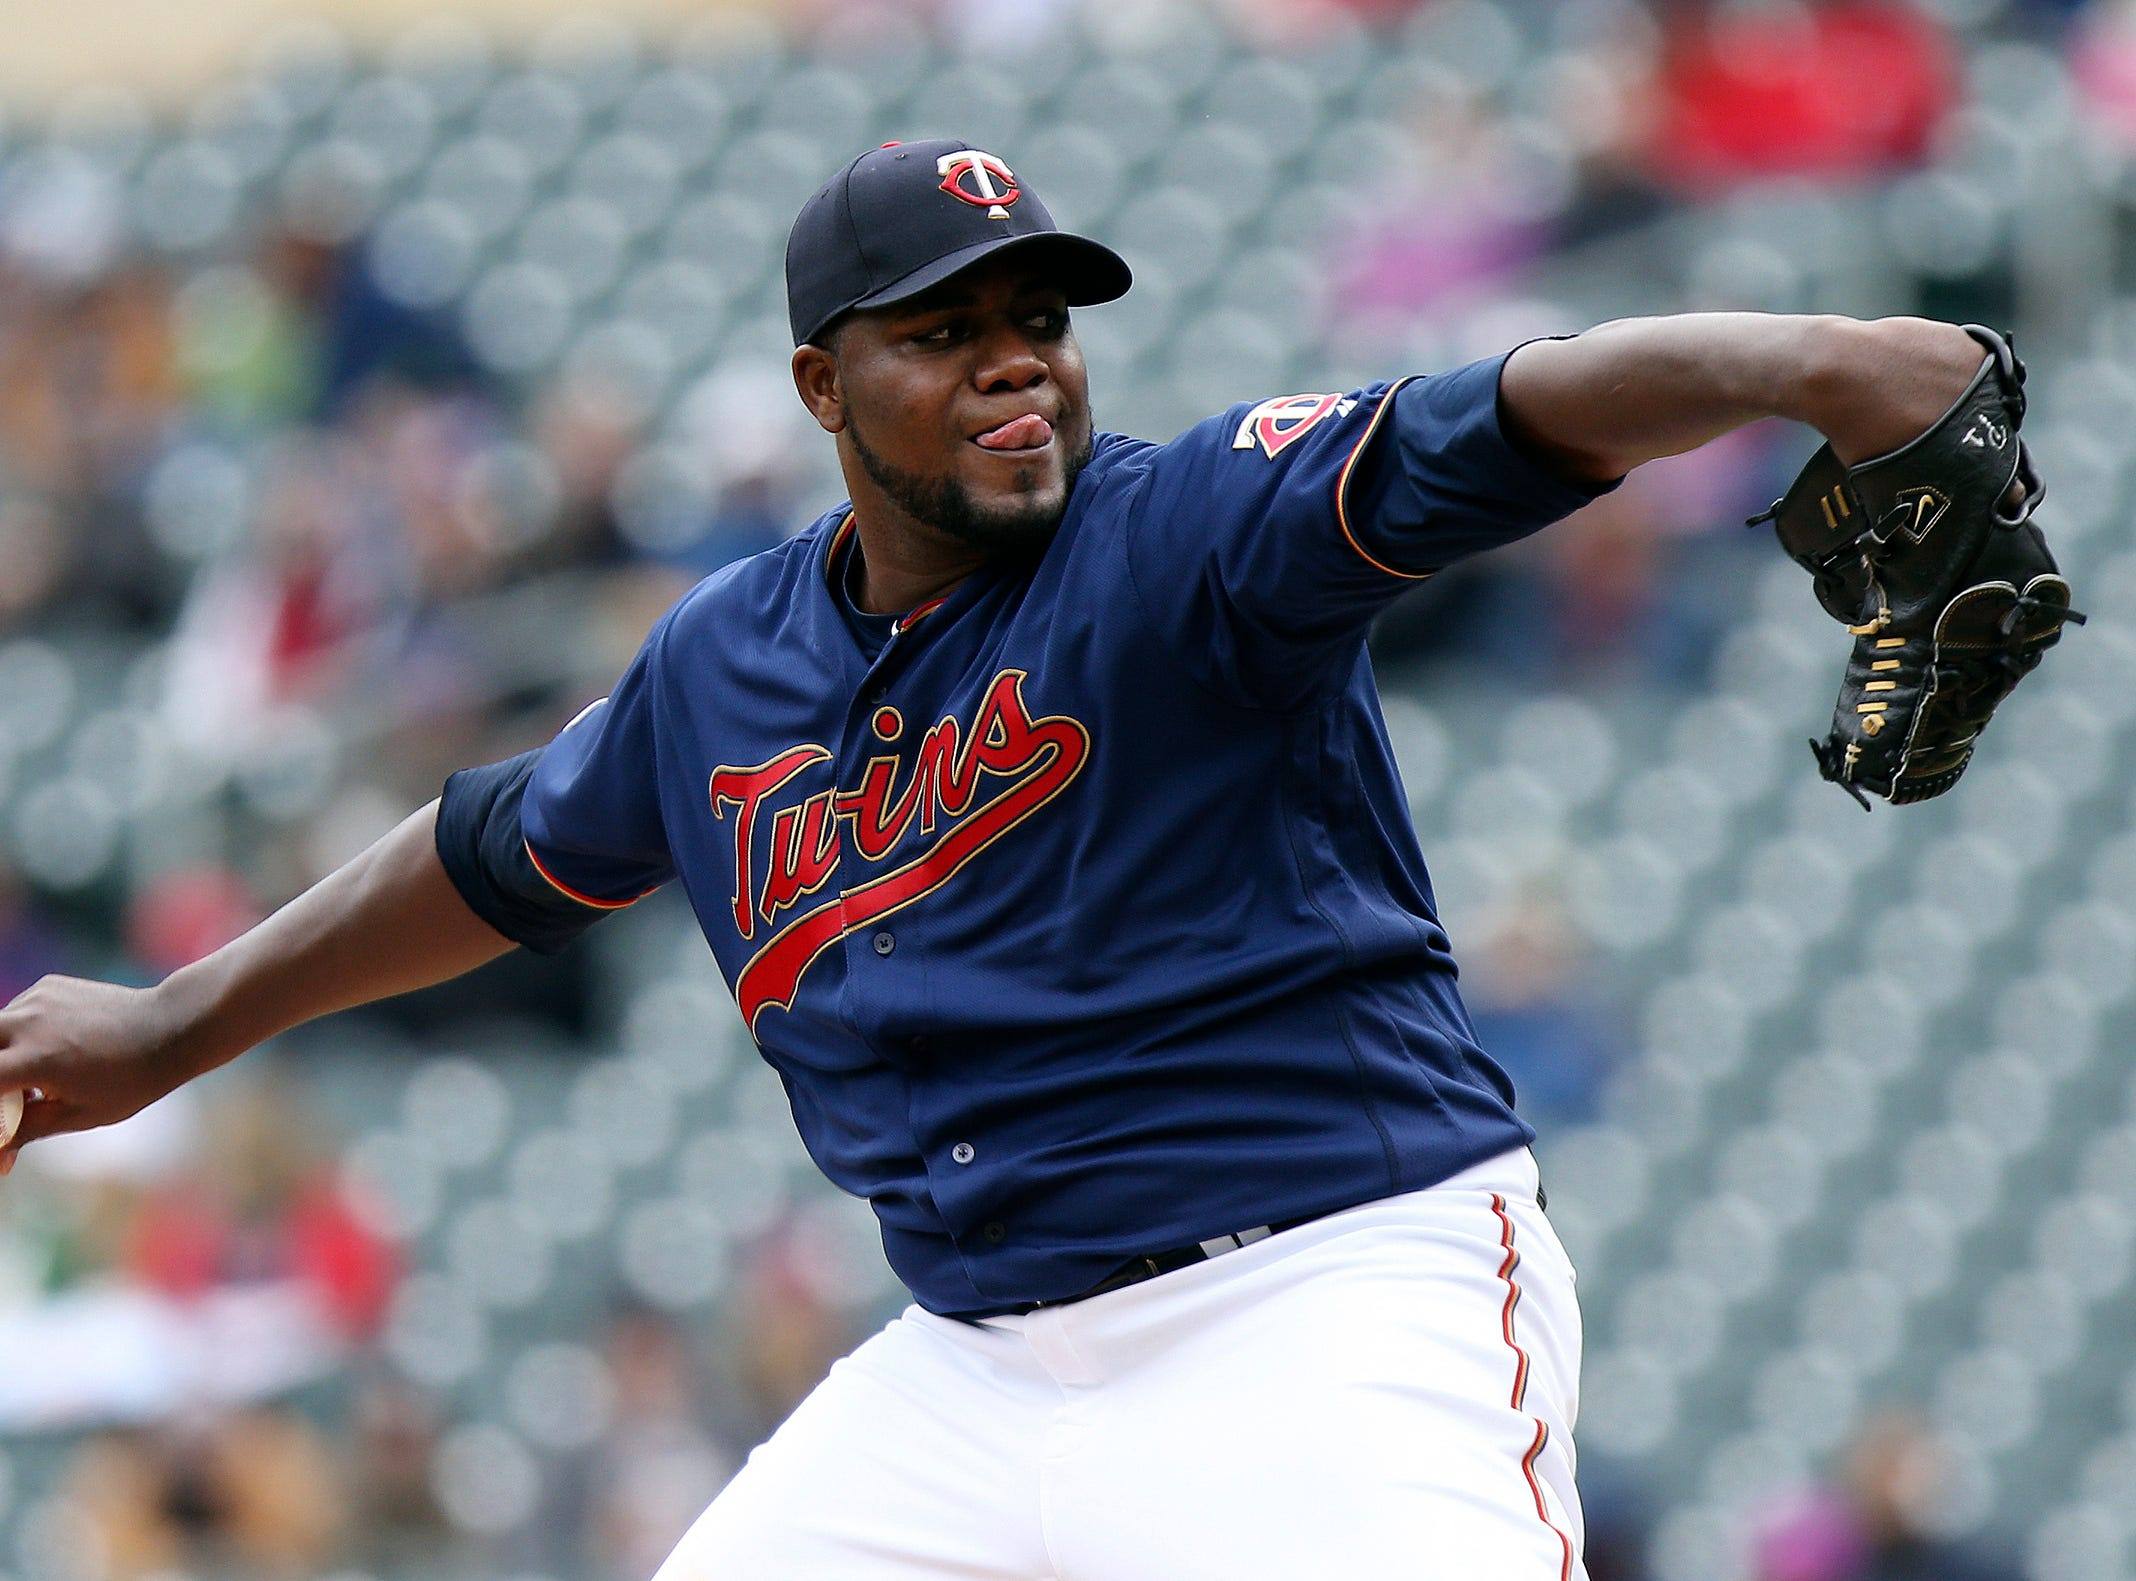 Minnesota Twins pitcher Michael Pineda throws in the first inning.